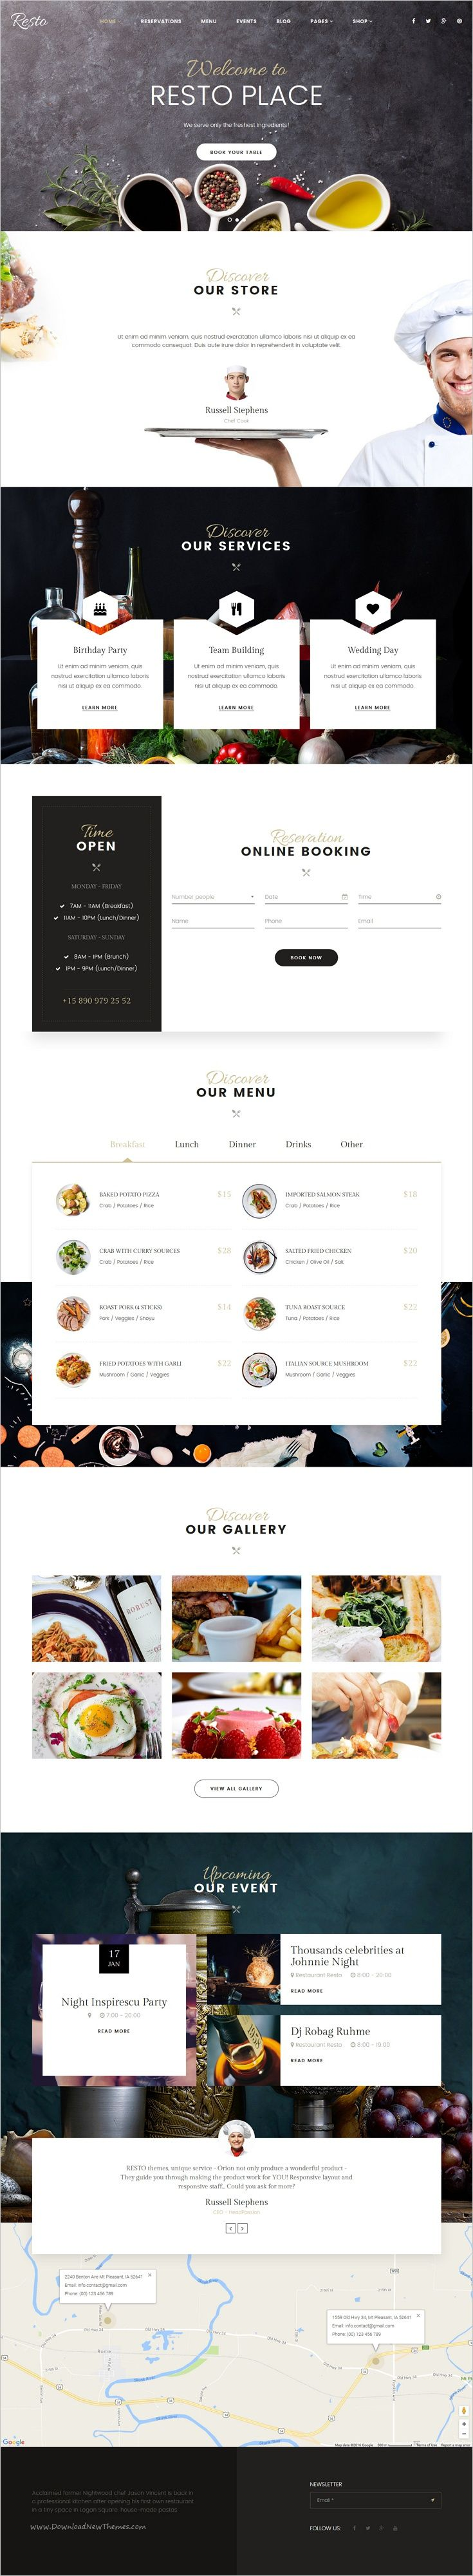 Resto is an attractive and responsive #Joomla template for #restaurant and #cafe website with 6 unique homepage layouts download now➩  https://themeforest.net/item/resto-multipurpose-restaurant-cafe-joomla-template/18682848?ref=Datasata